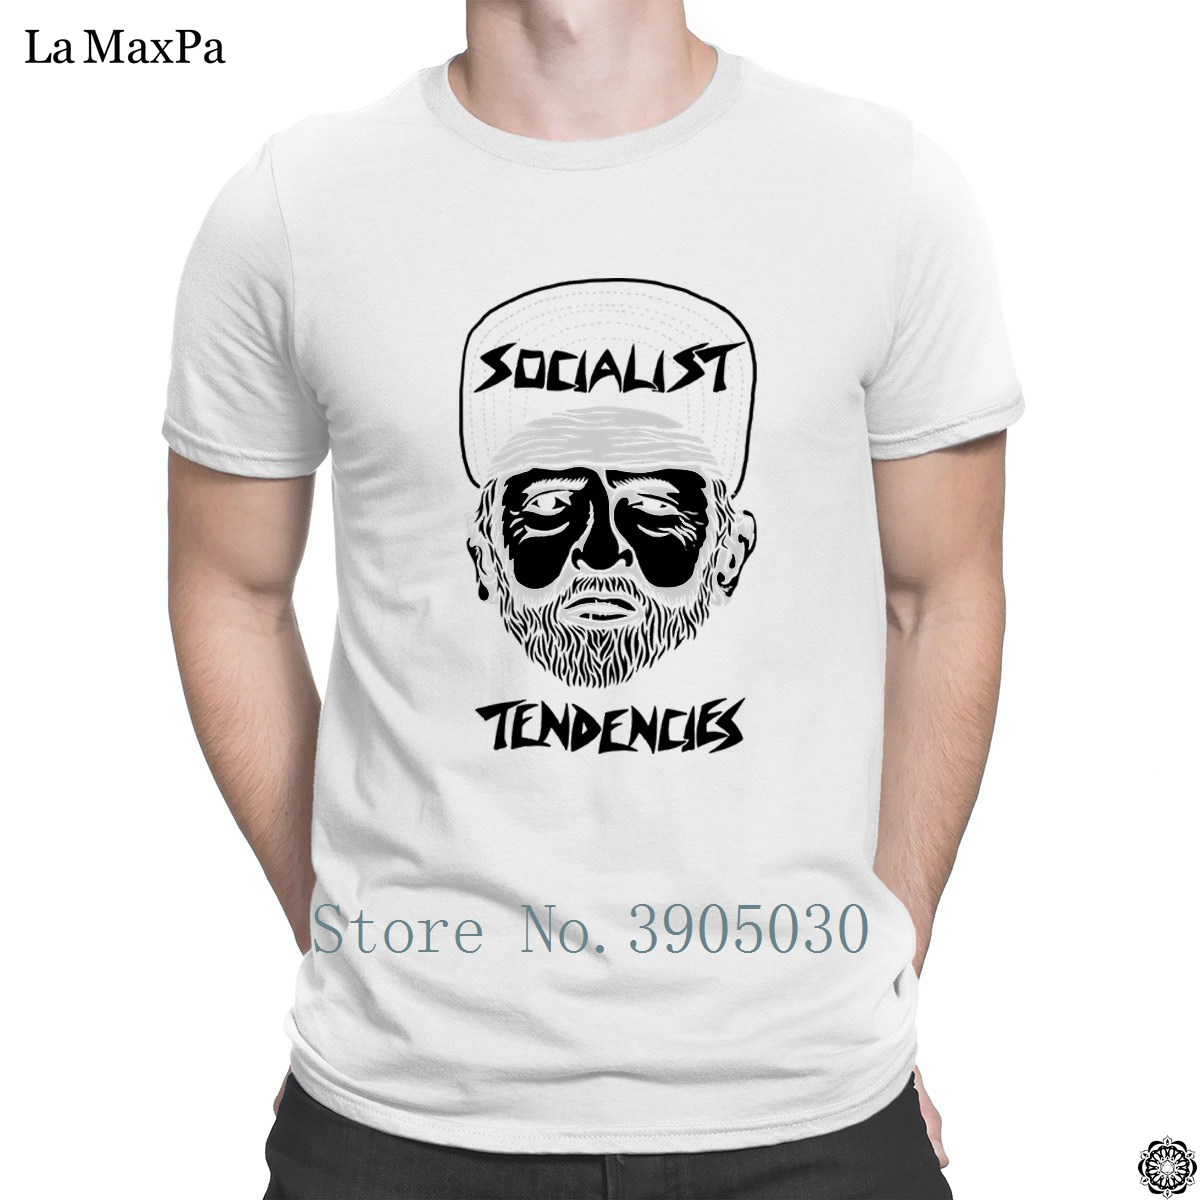 Humor Hilarious T Shirt Man Socialist Tendencies Mens Unisex Fashion Big Size Valerie Stripe Pants Navy 3xl Tshirt Pattern Plus Tee Hiphop Top In Shirts From Clothing